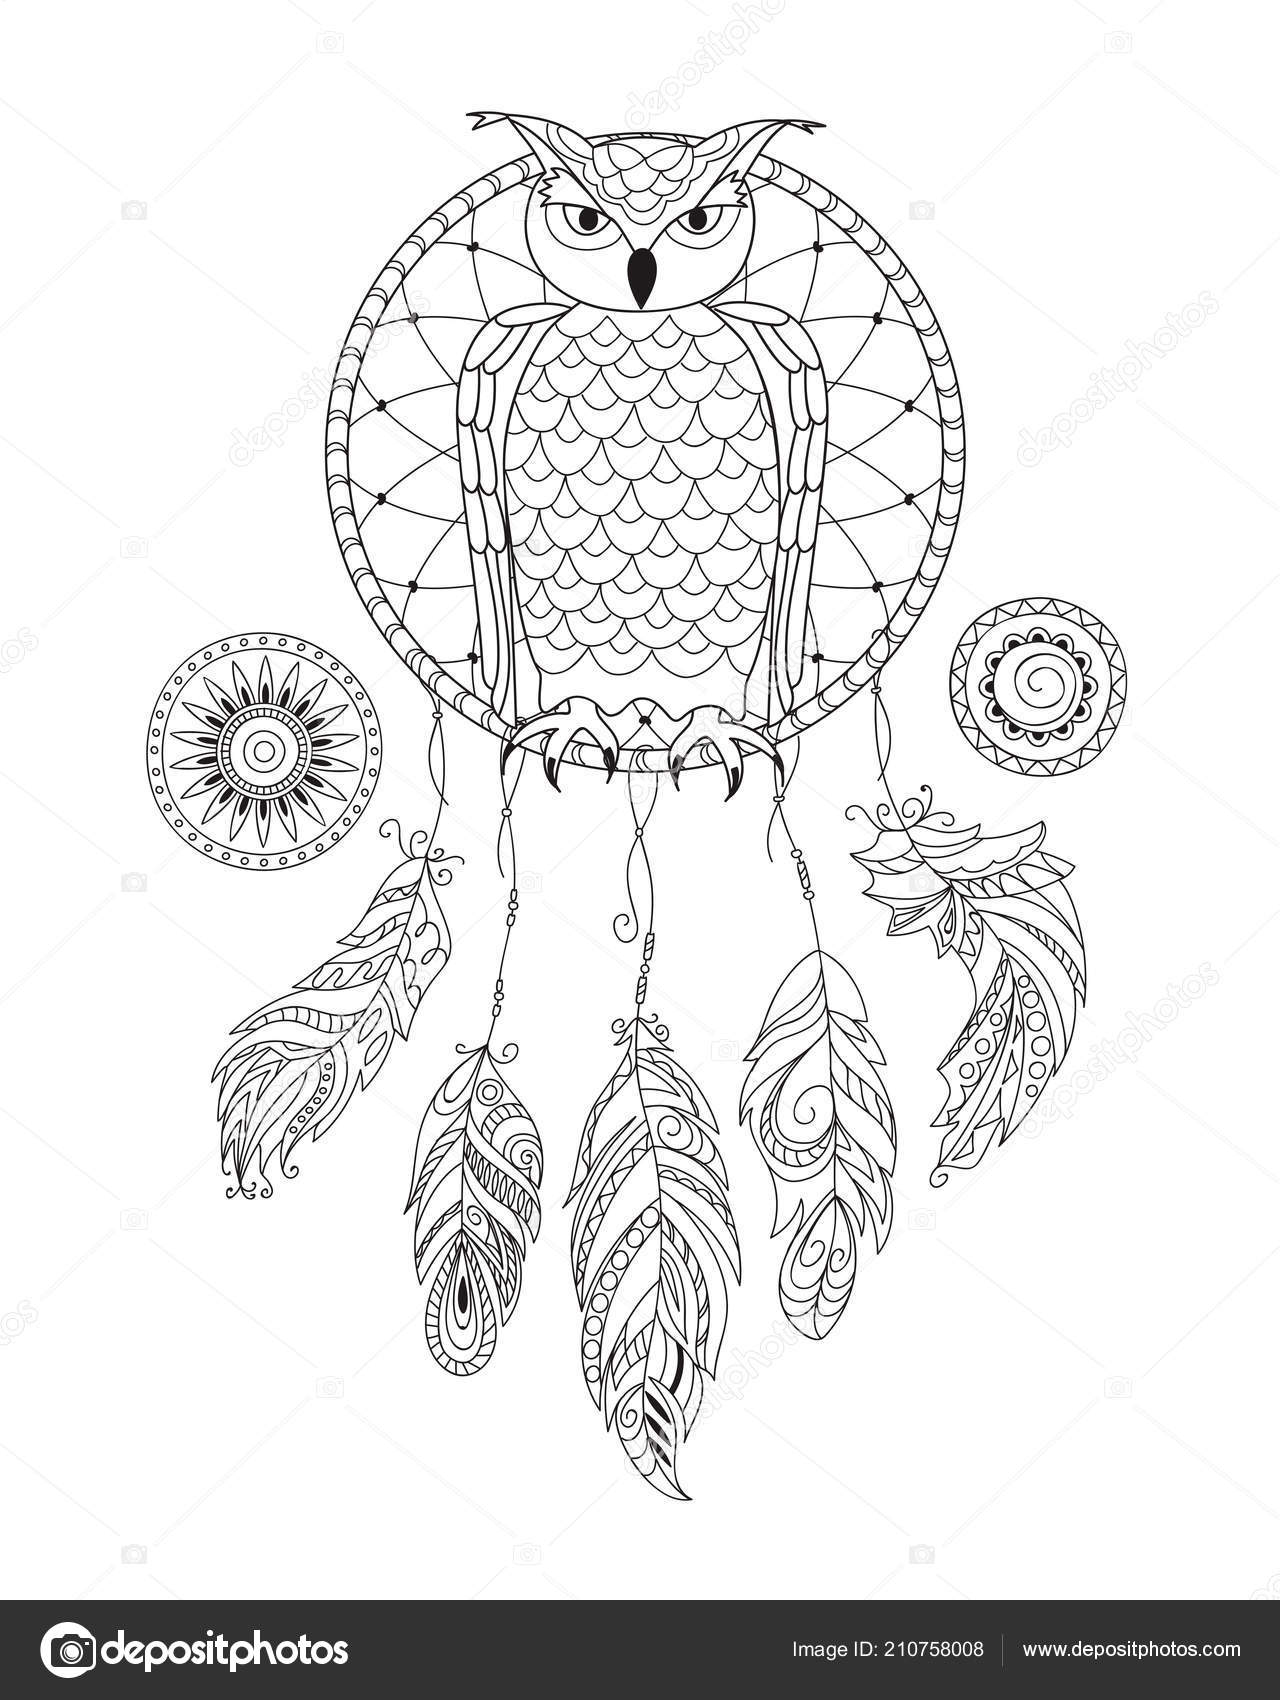 Owl Mandala coloring page | Free Printable Coloring Pages | 1700x1280